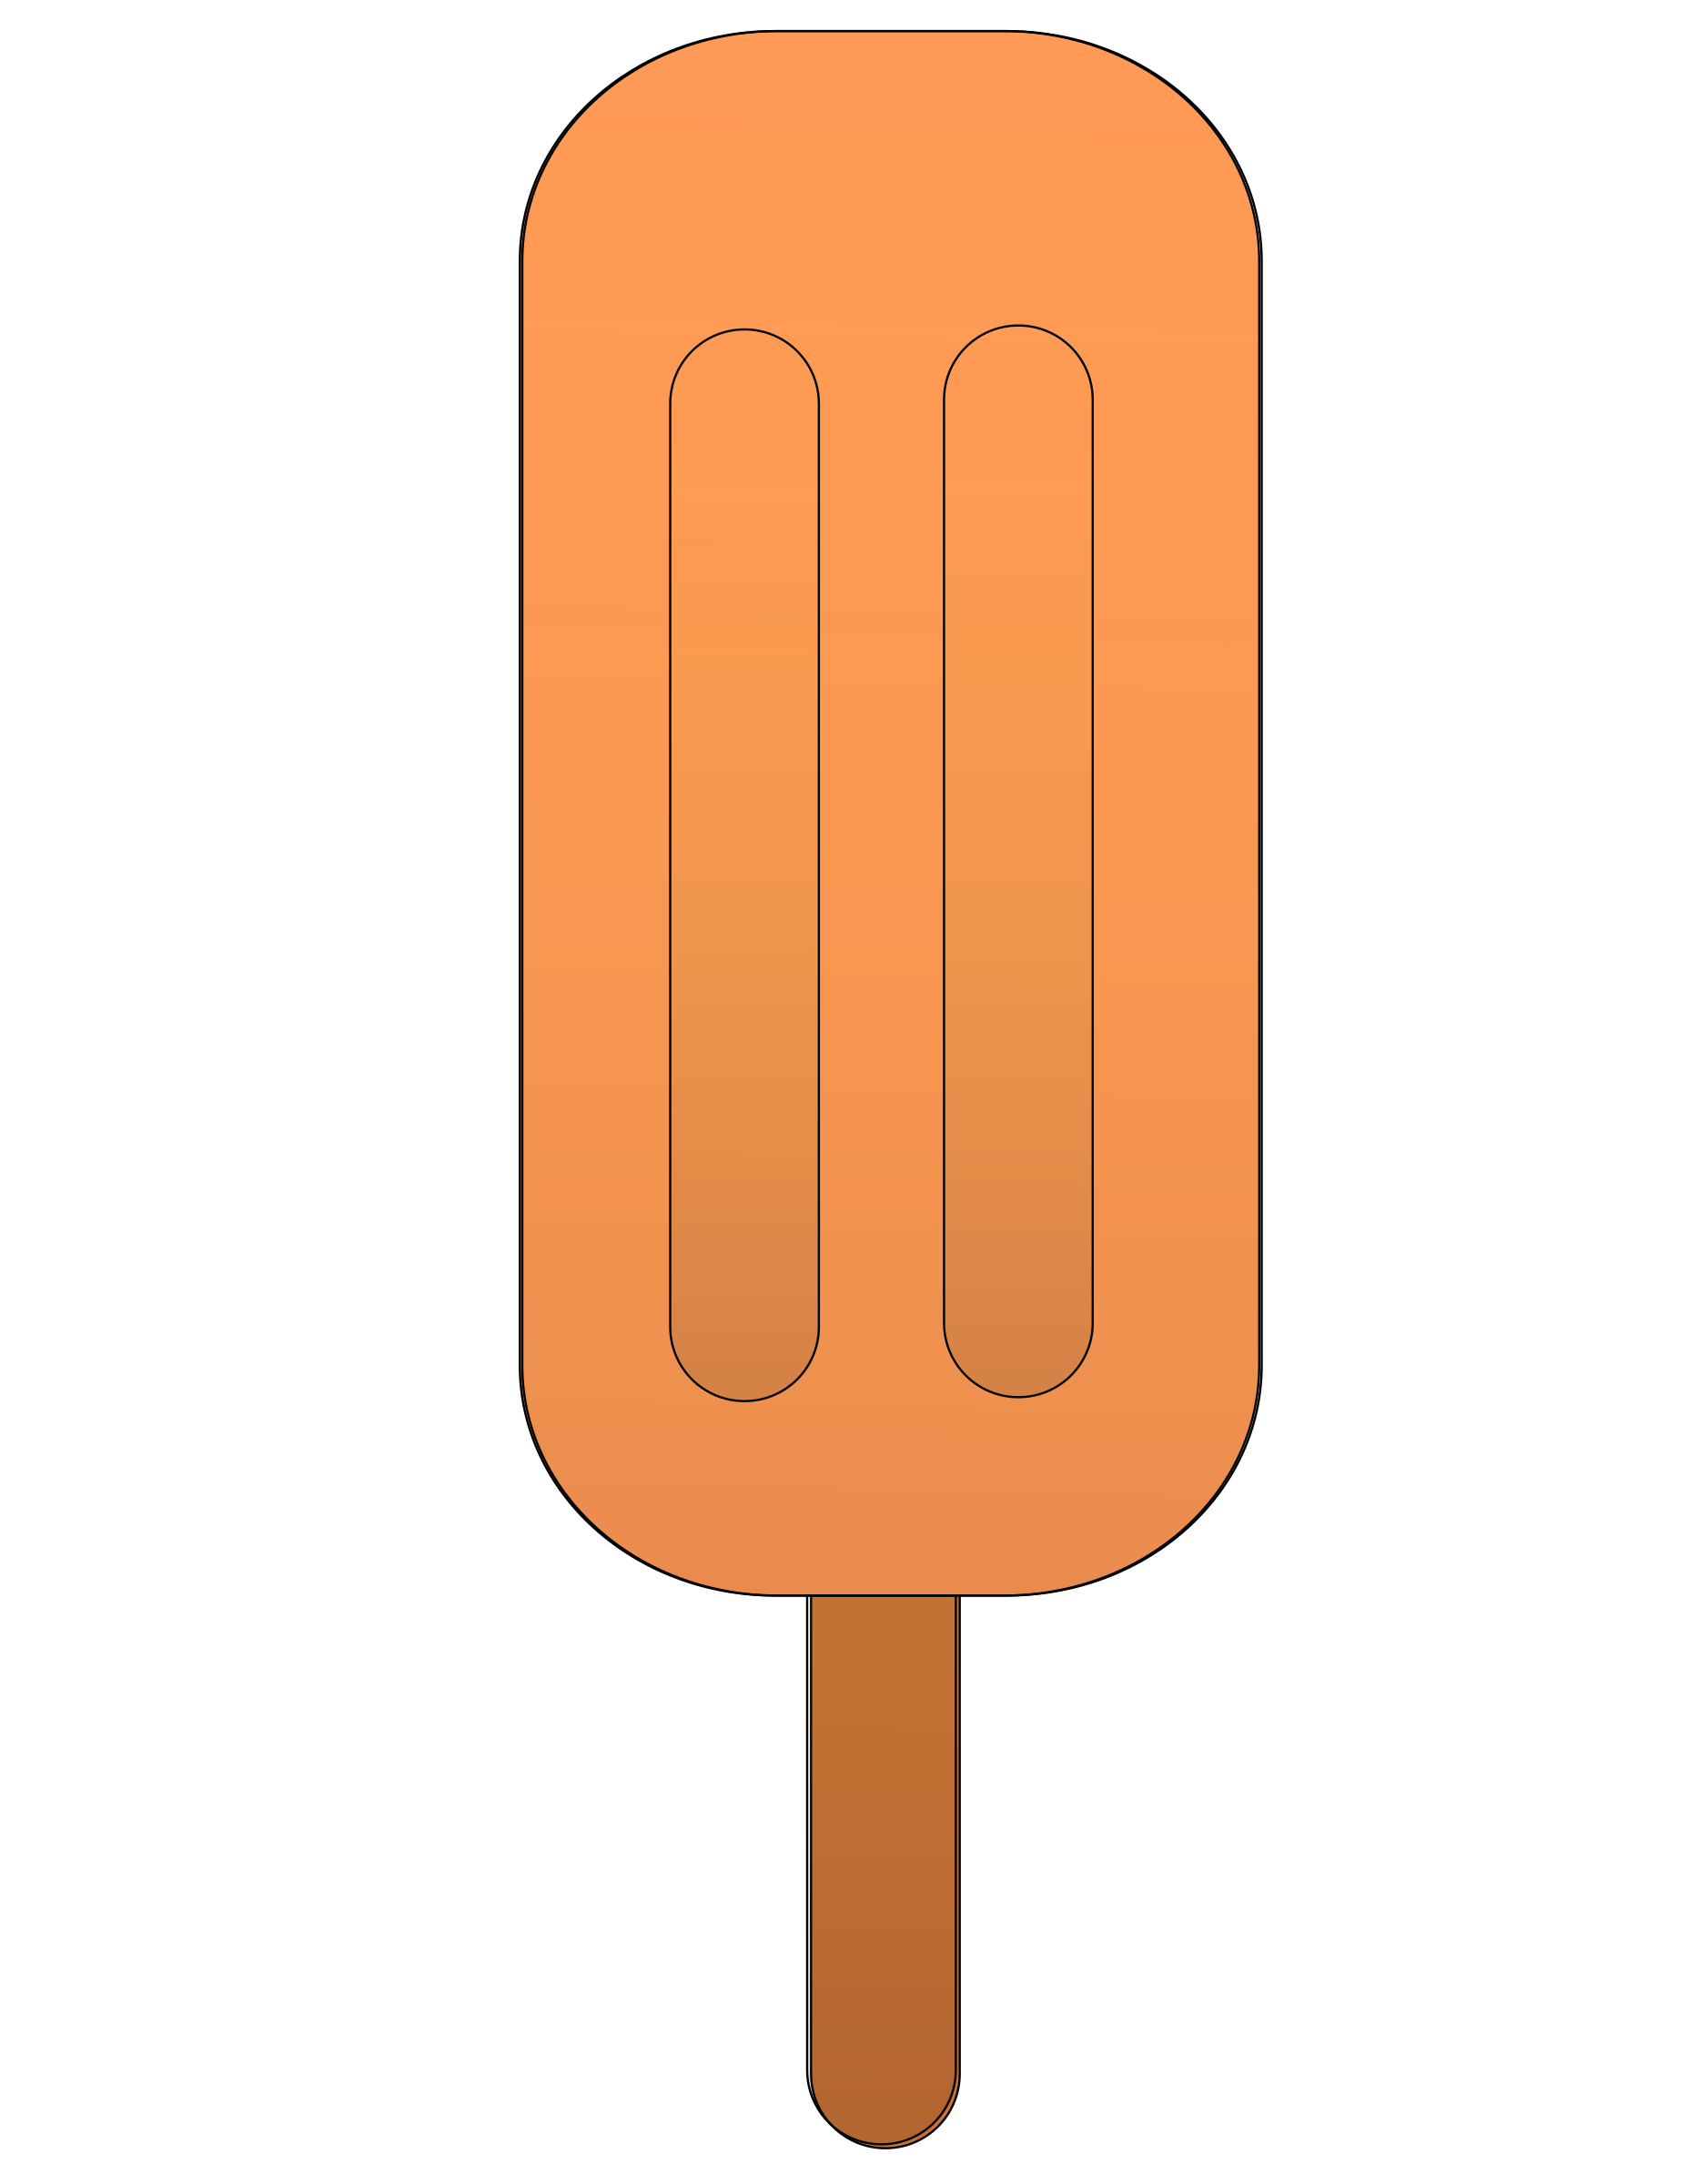 Orange icons free and. Popsicle png graphic transparent download